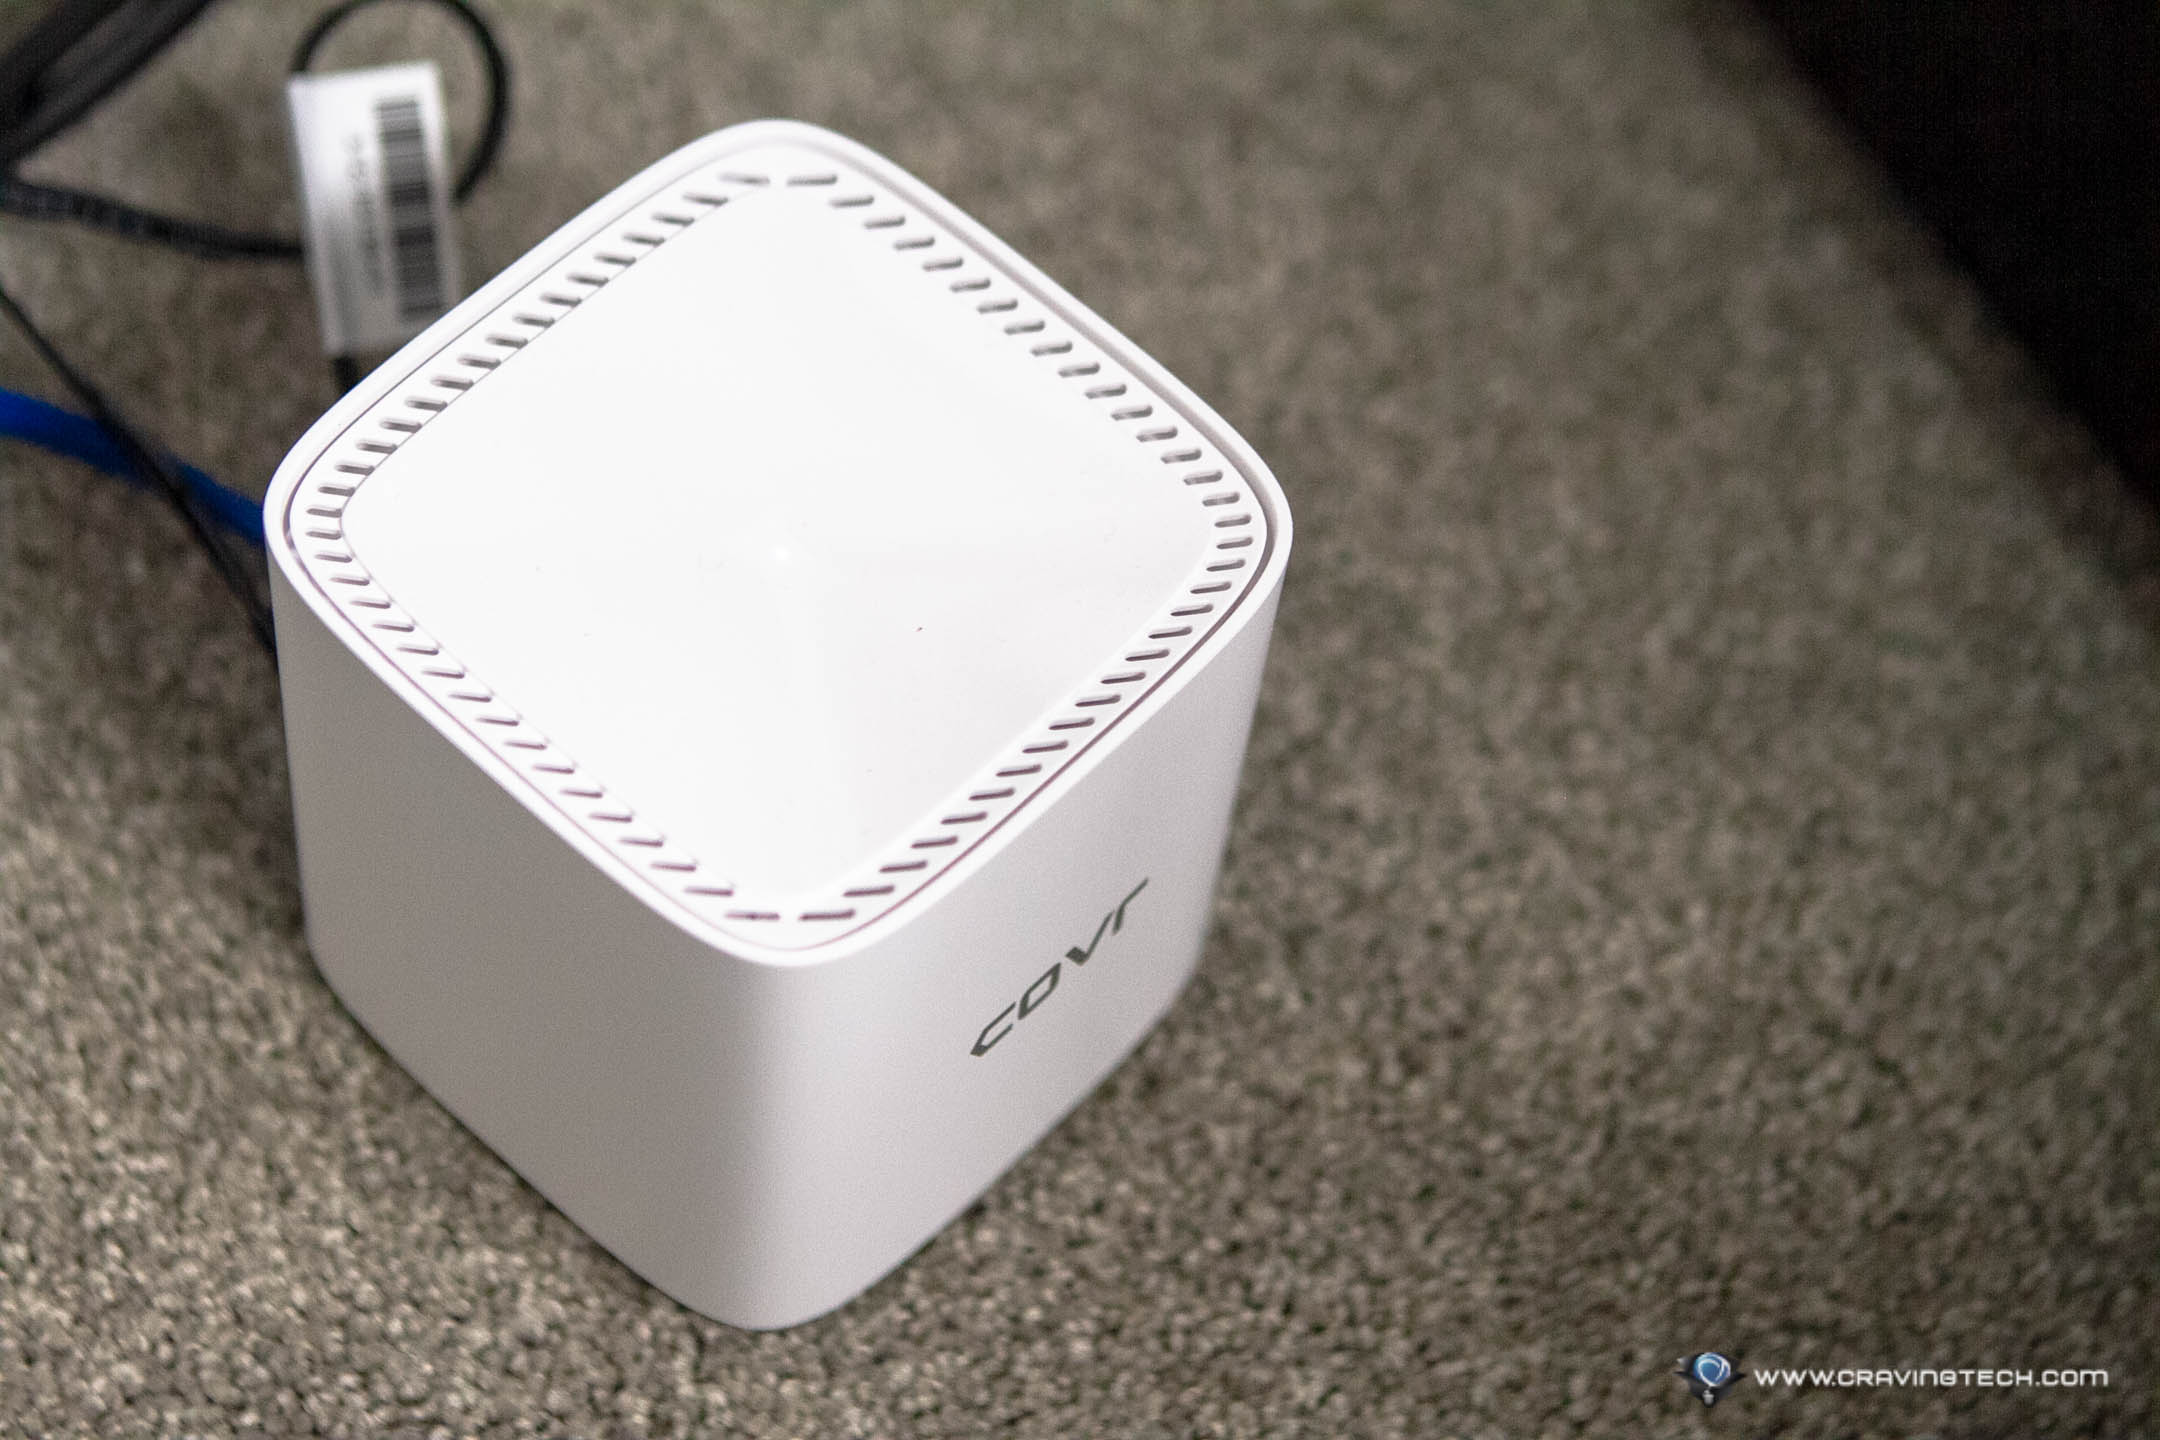 D-Link COVR 1102 Review – Affordable Mesh Wi-Fi System with great performance & value